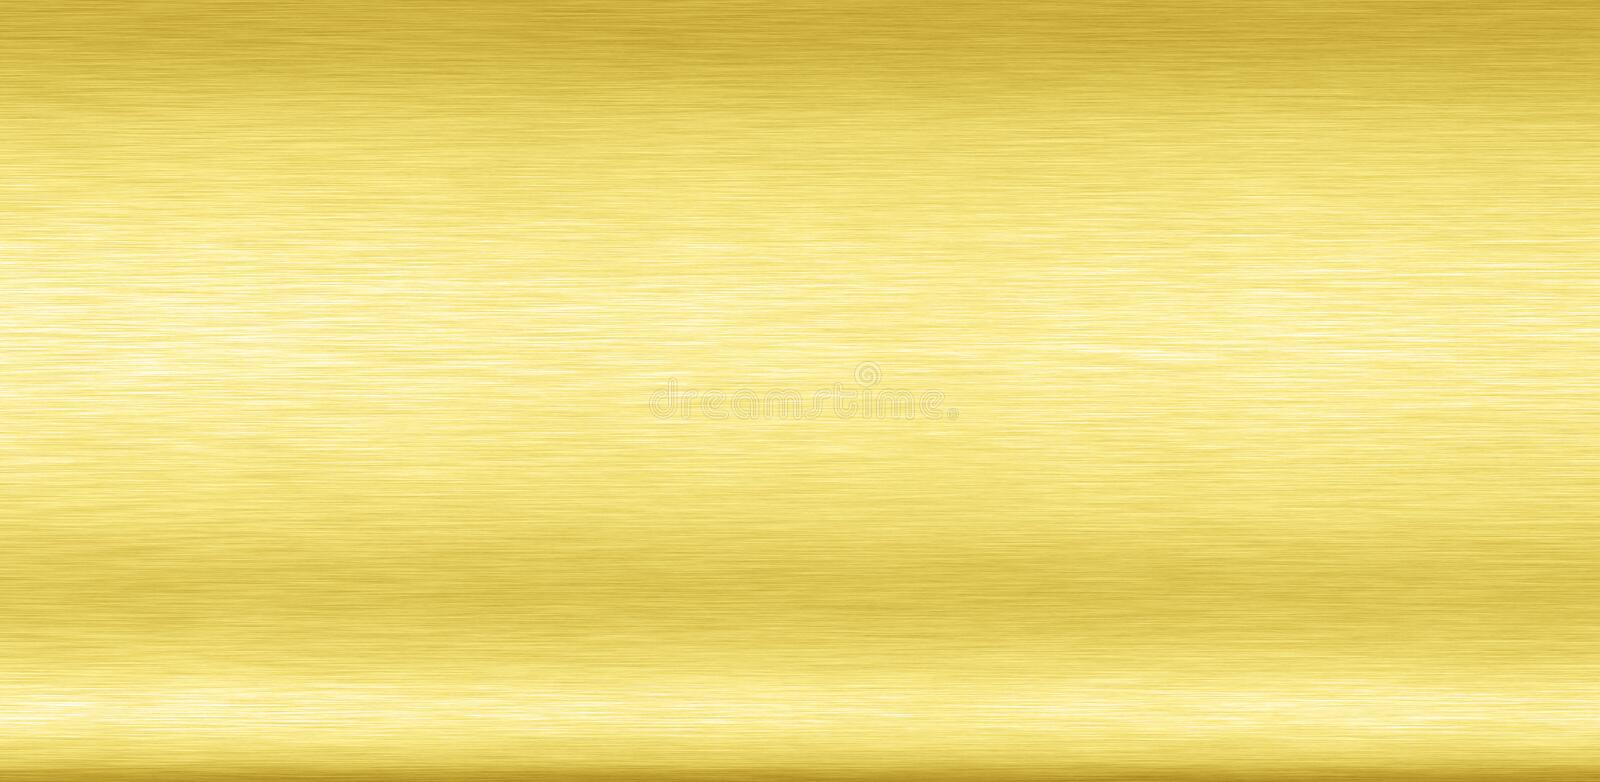 Abstract Shiny smooth foil metal Gold color background Bright vintage Brass plate chrome element texture concept simple bronze lea royalty free illustration